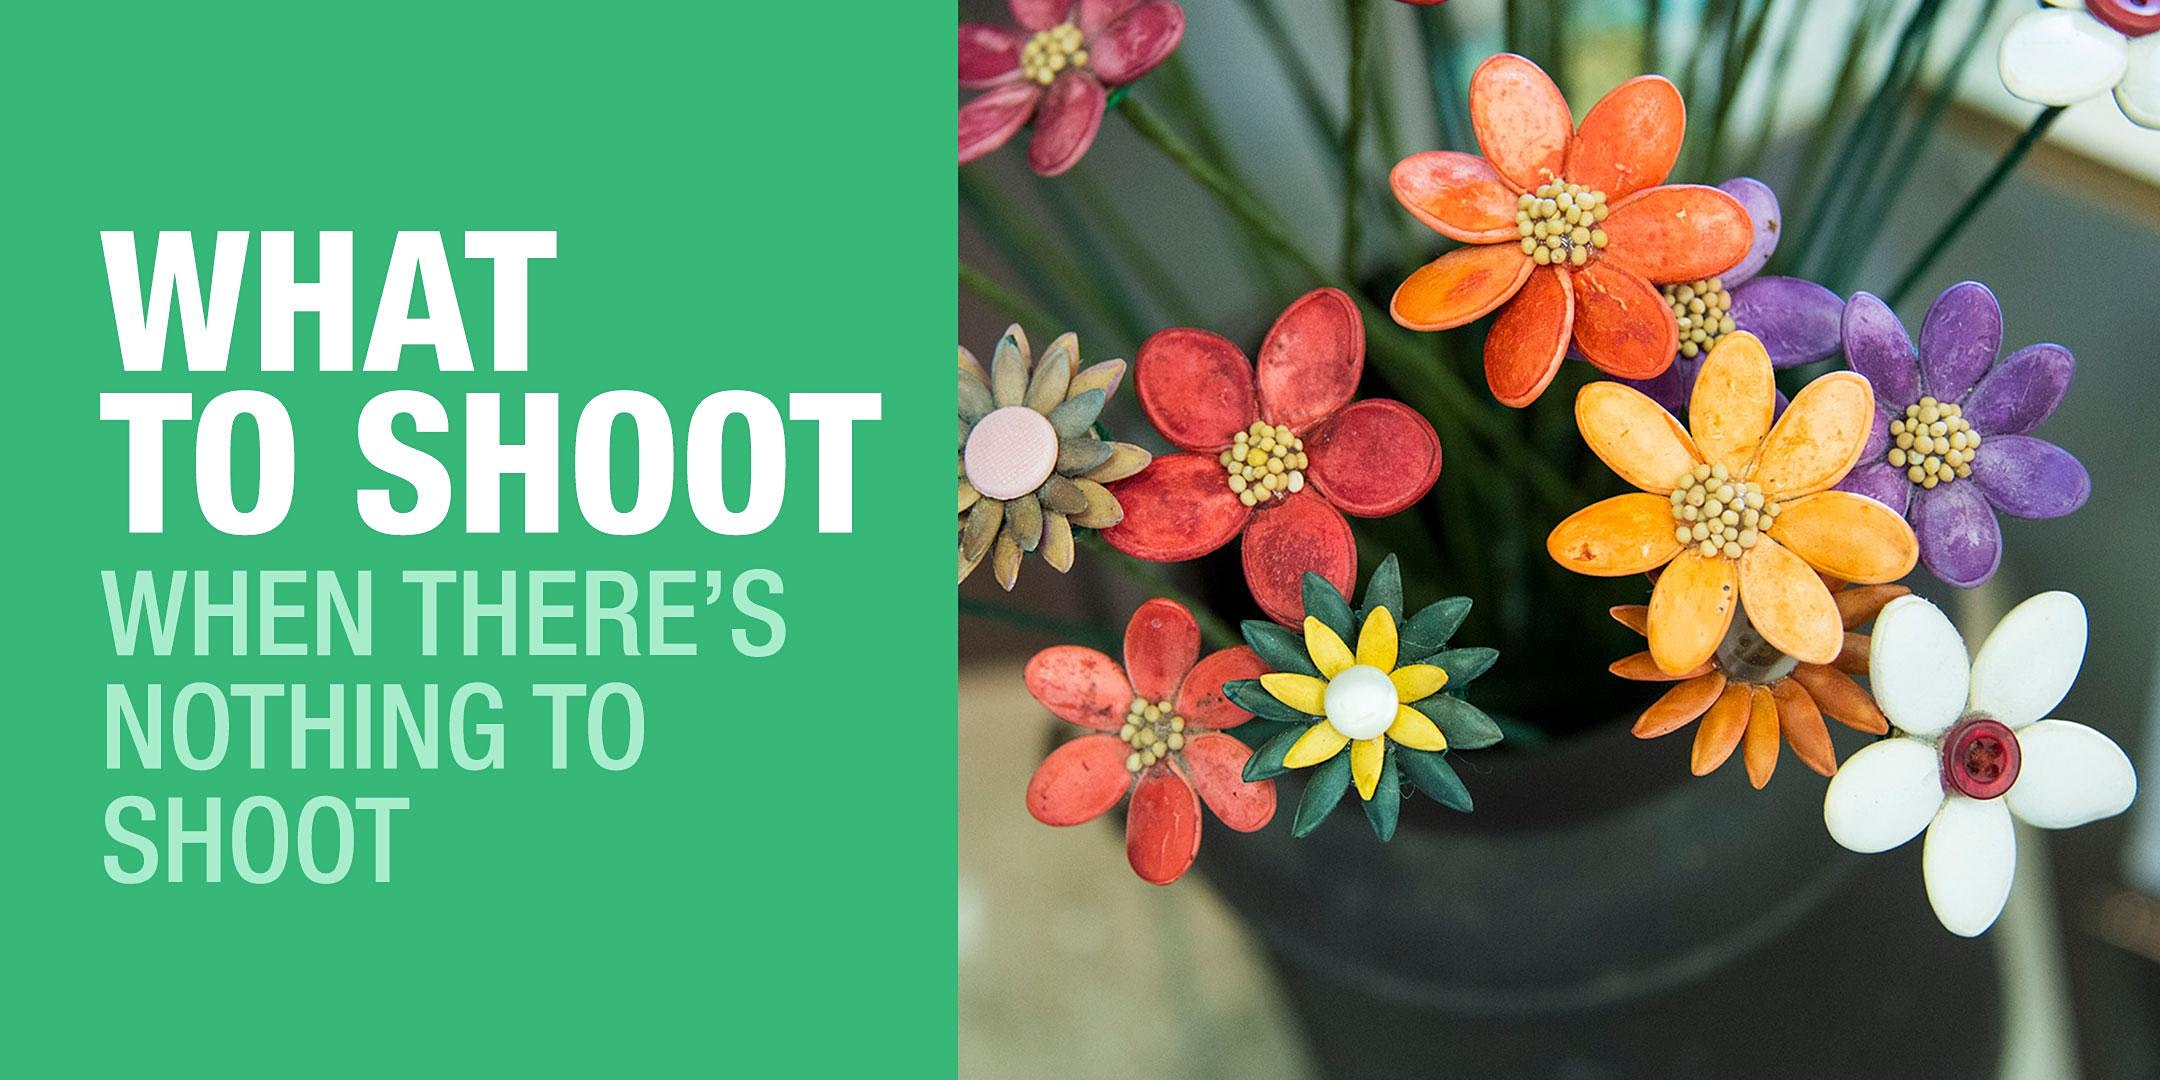 What To Shoot When There's Nothing To Shoot